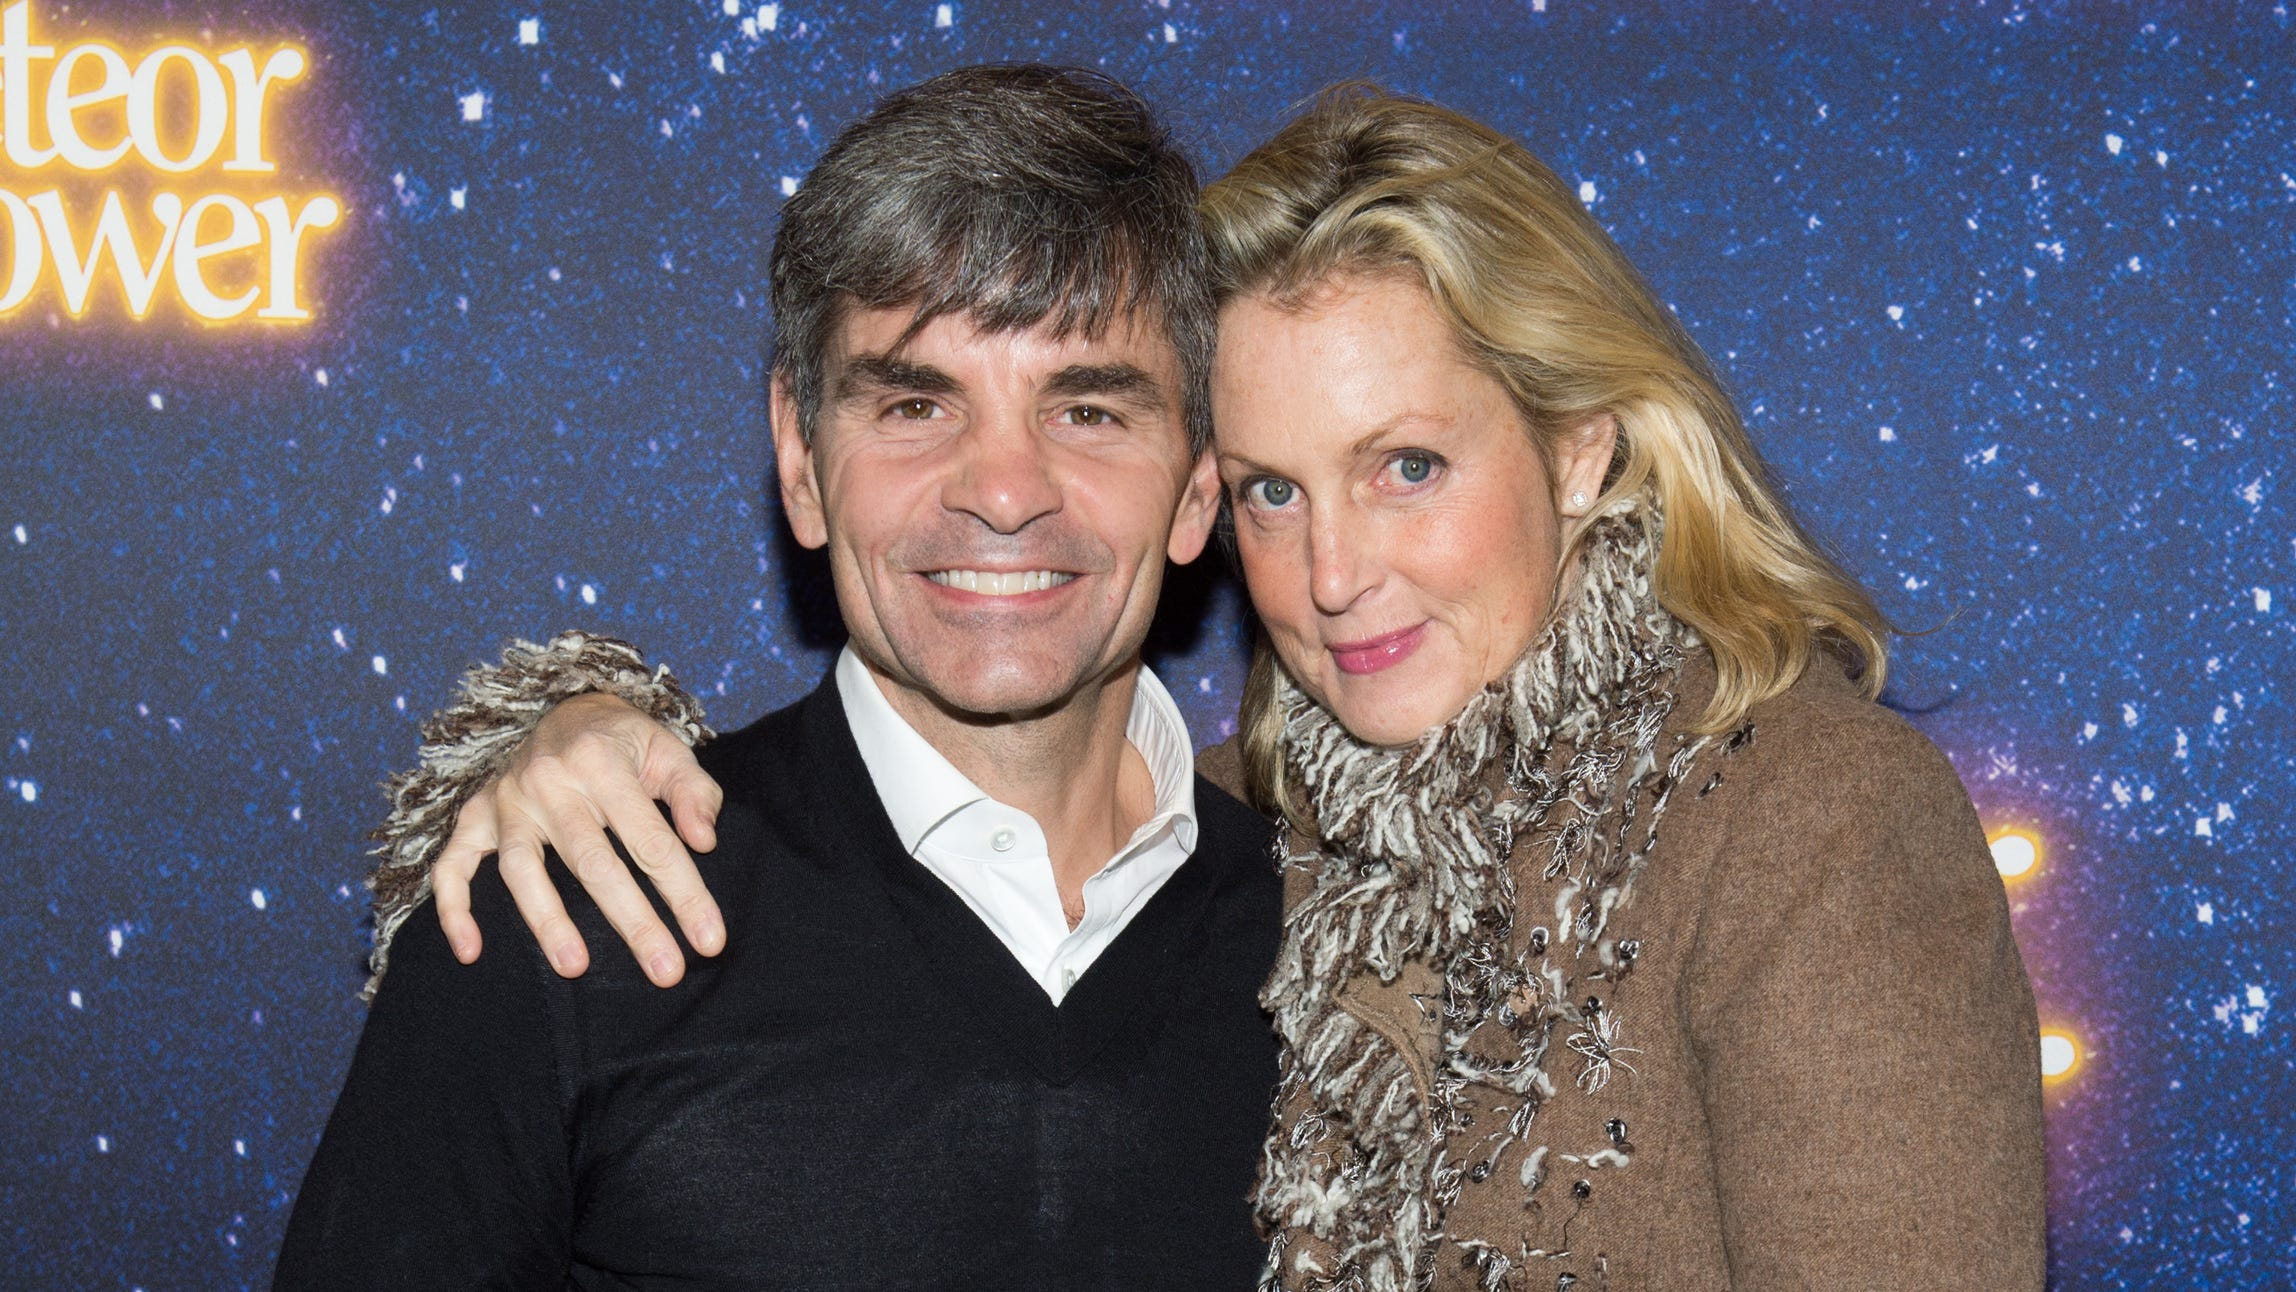 George Stephanopoulos Wife Ali Wentworth Tests Positive For Covid 19